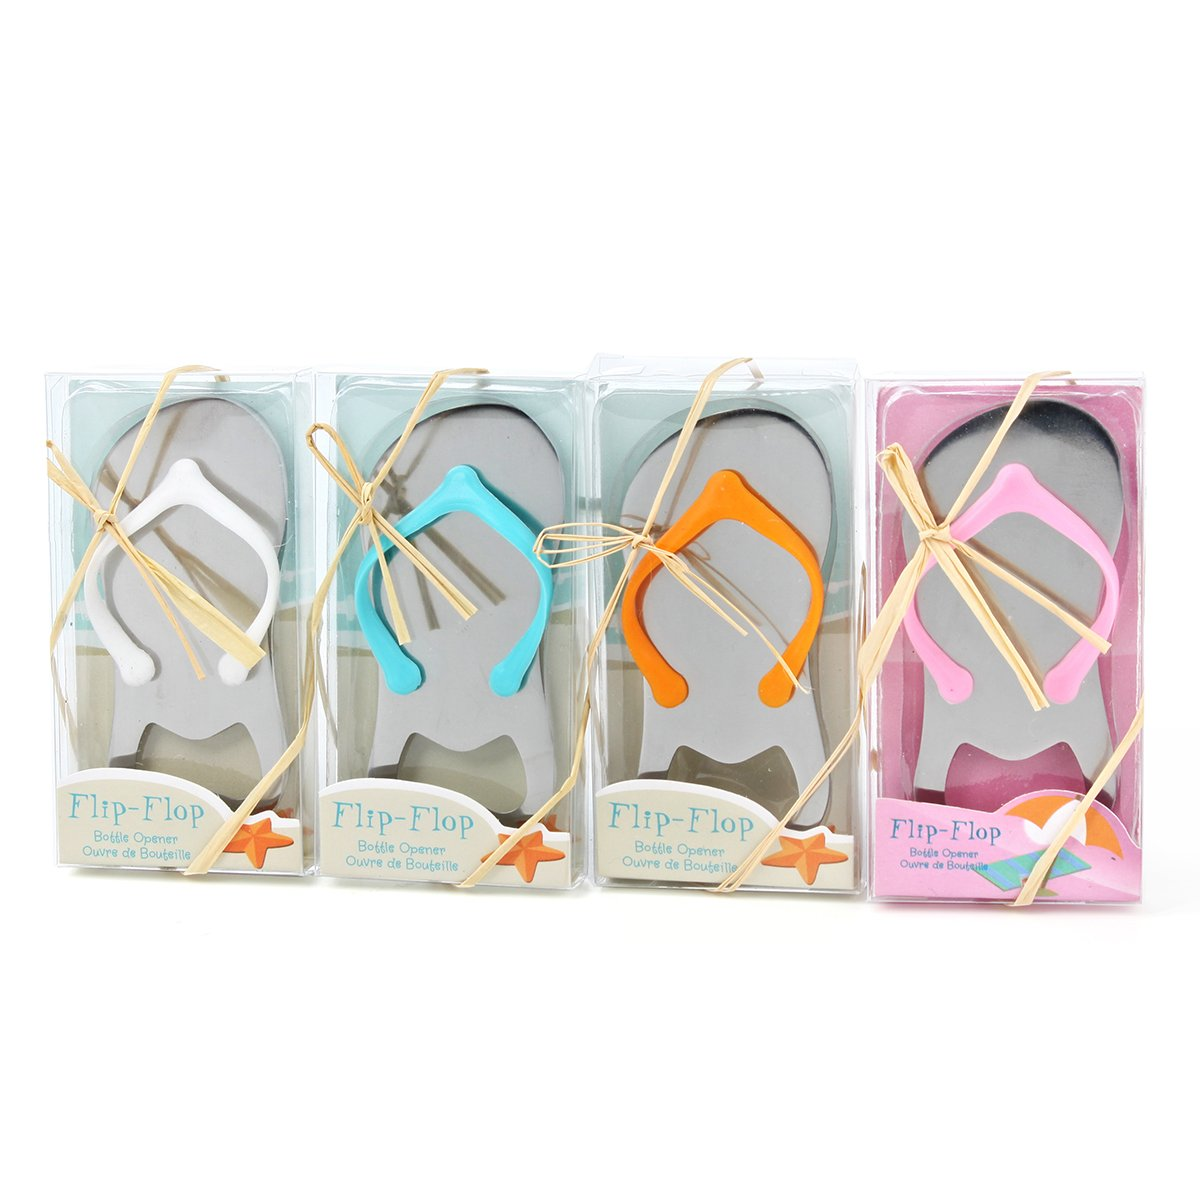 Amazon.com: 10-Pack Personalized Flip-Flop Bottle Openers, Engaved ...